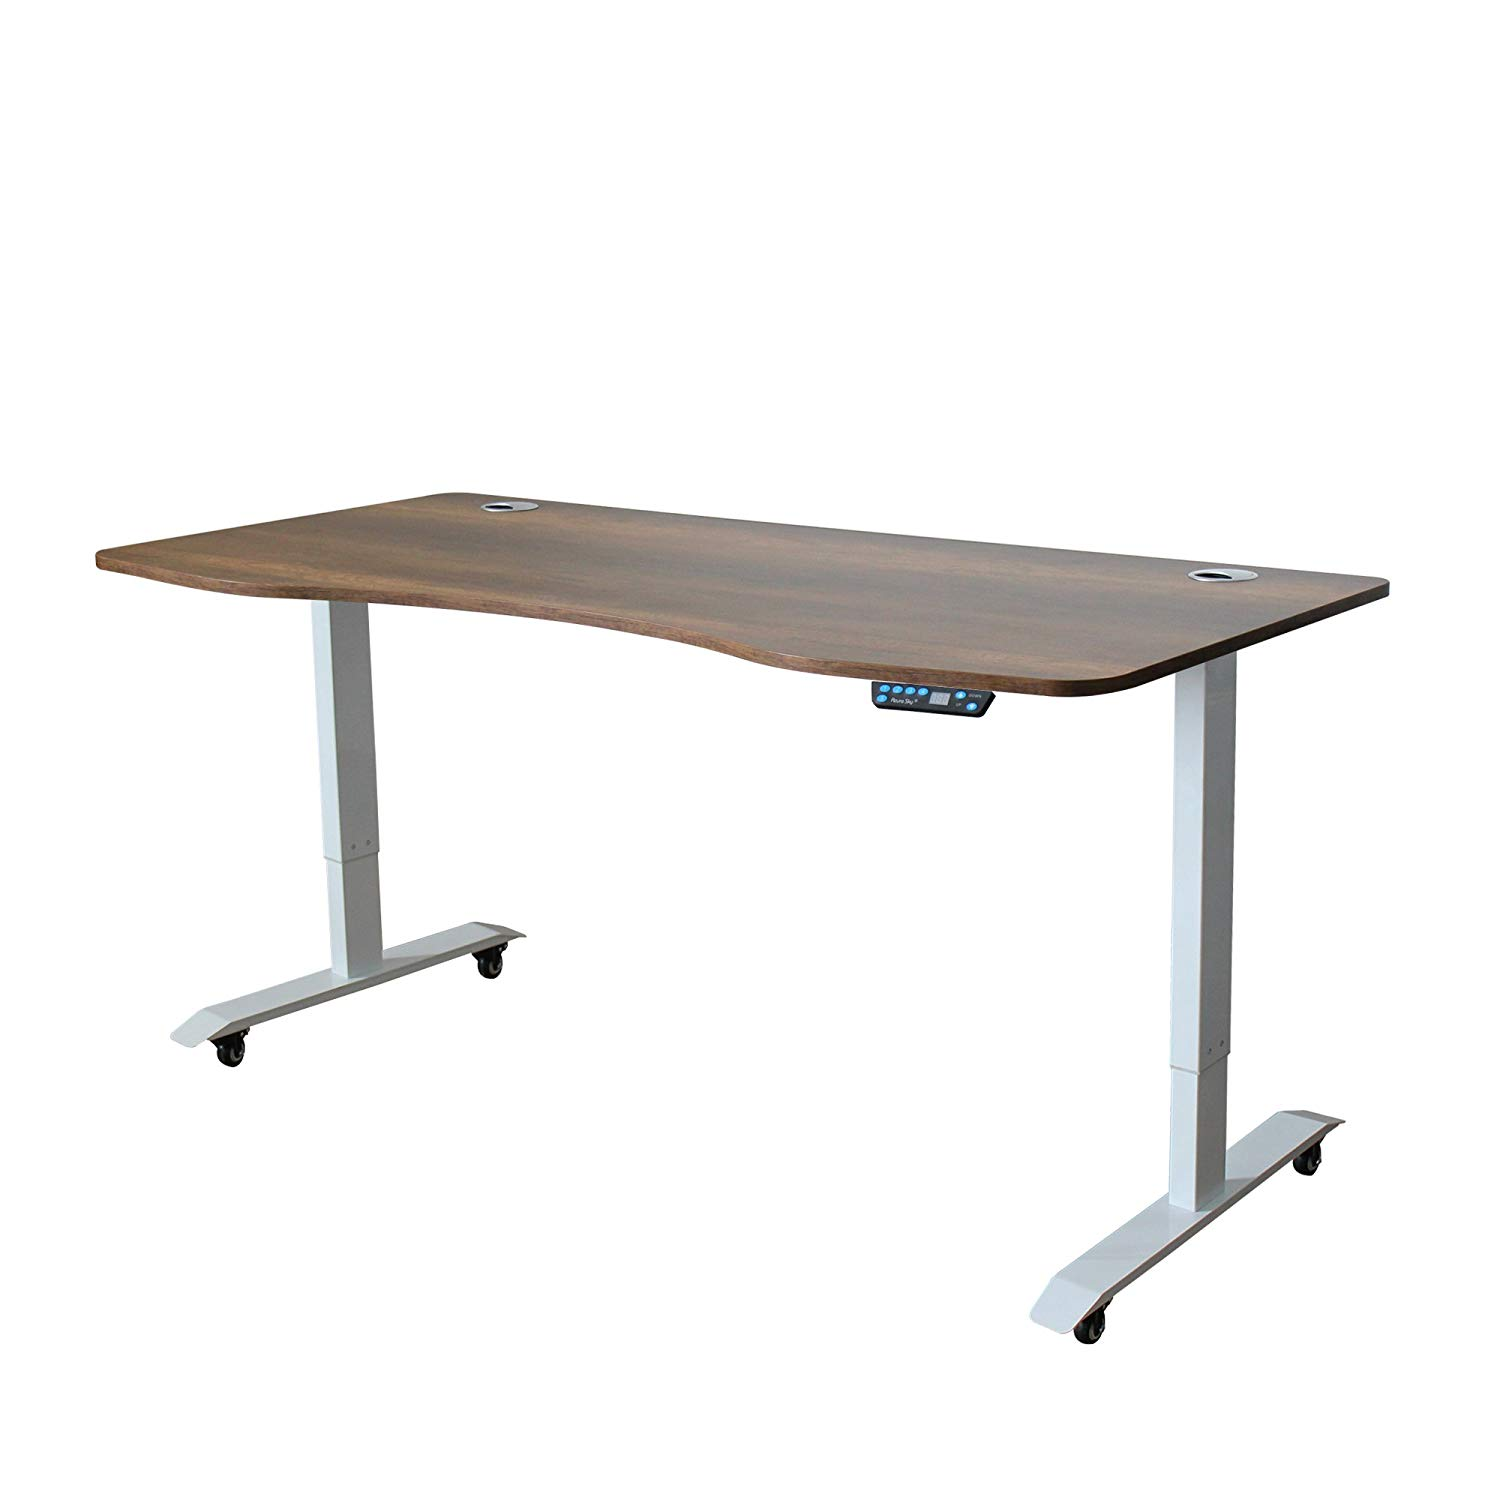 Azure Sky A-63 Ergonomic 63-in 3 Memory Buttons LED Electric Automatic Height Adjustable Sit to Stand Curved Work Office Desk with White Legs